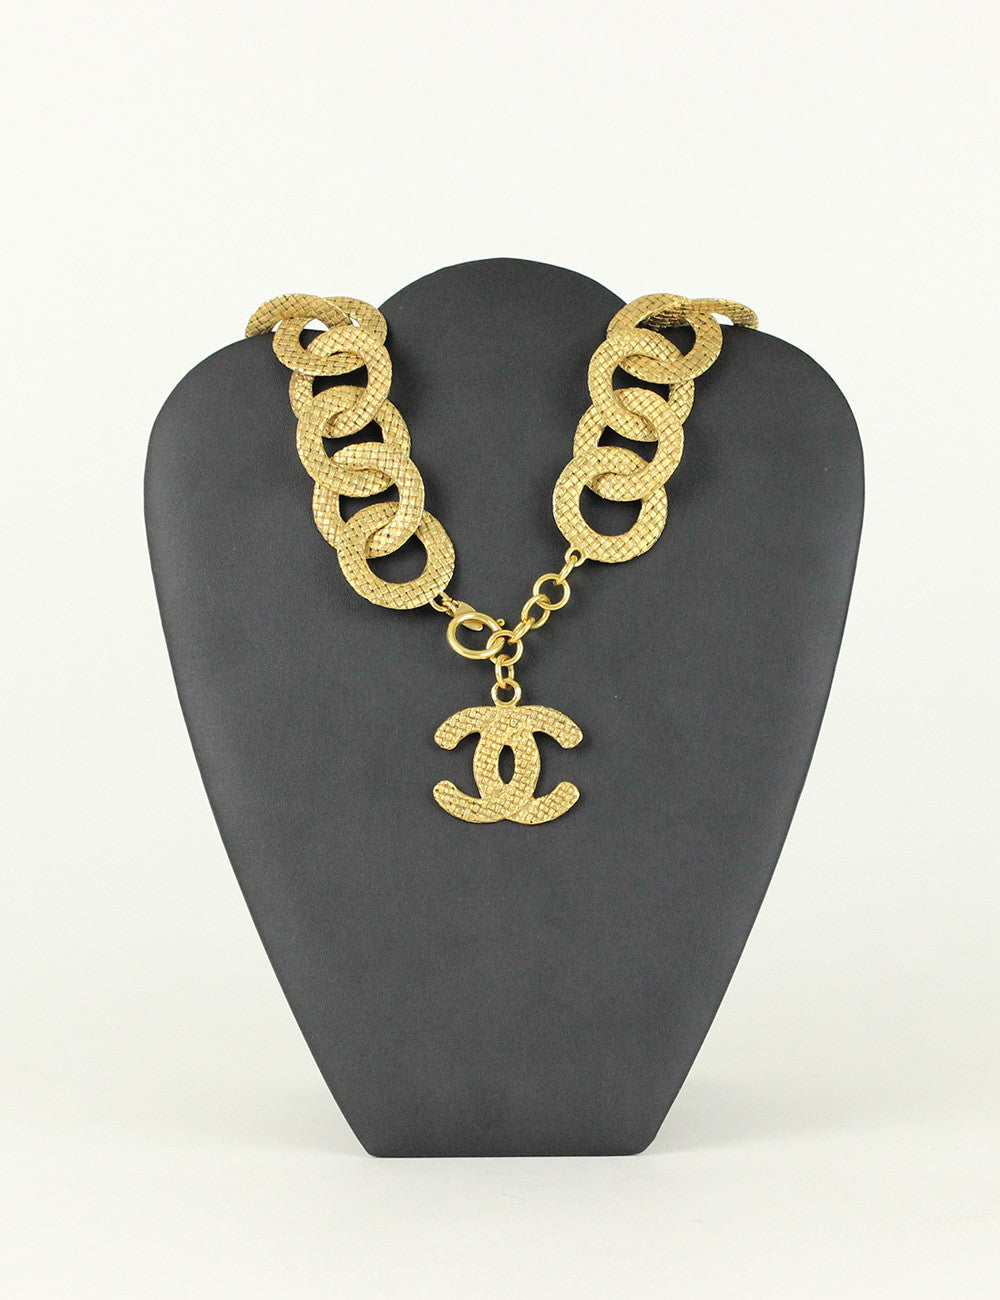 Chanel <br> Vintage Large Chain Link Necklace